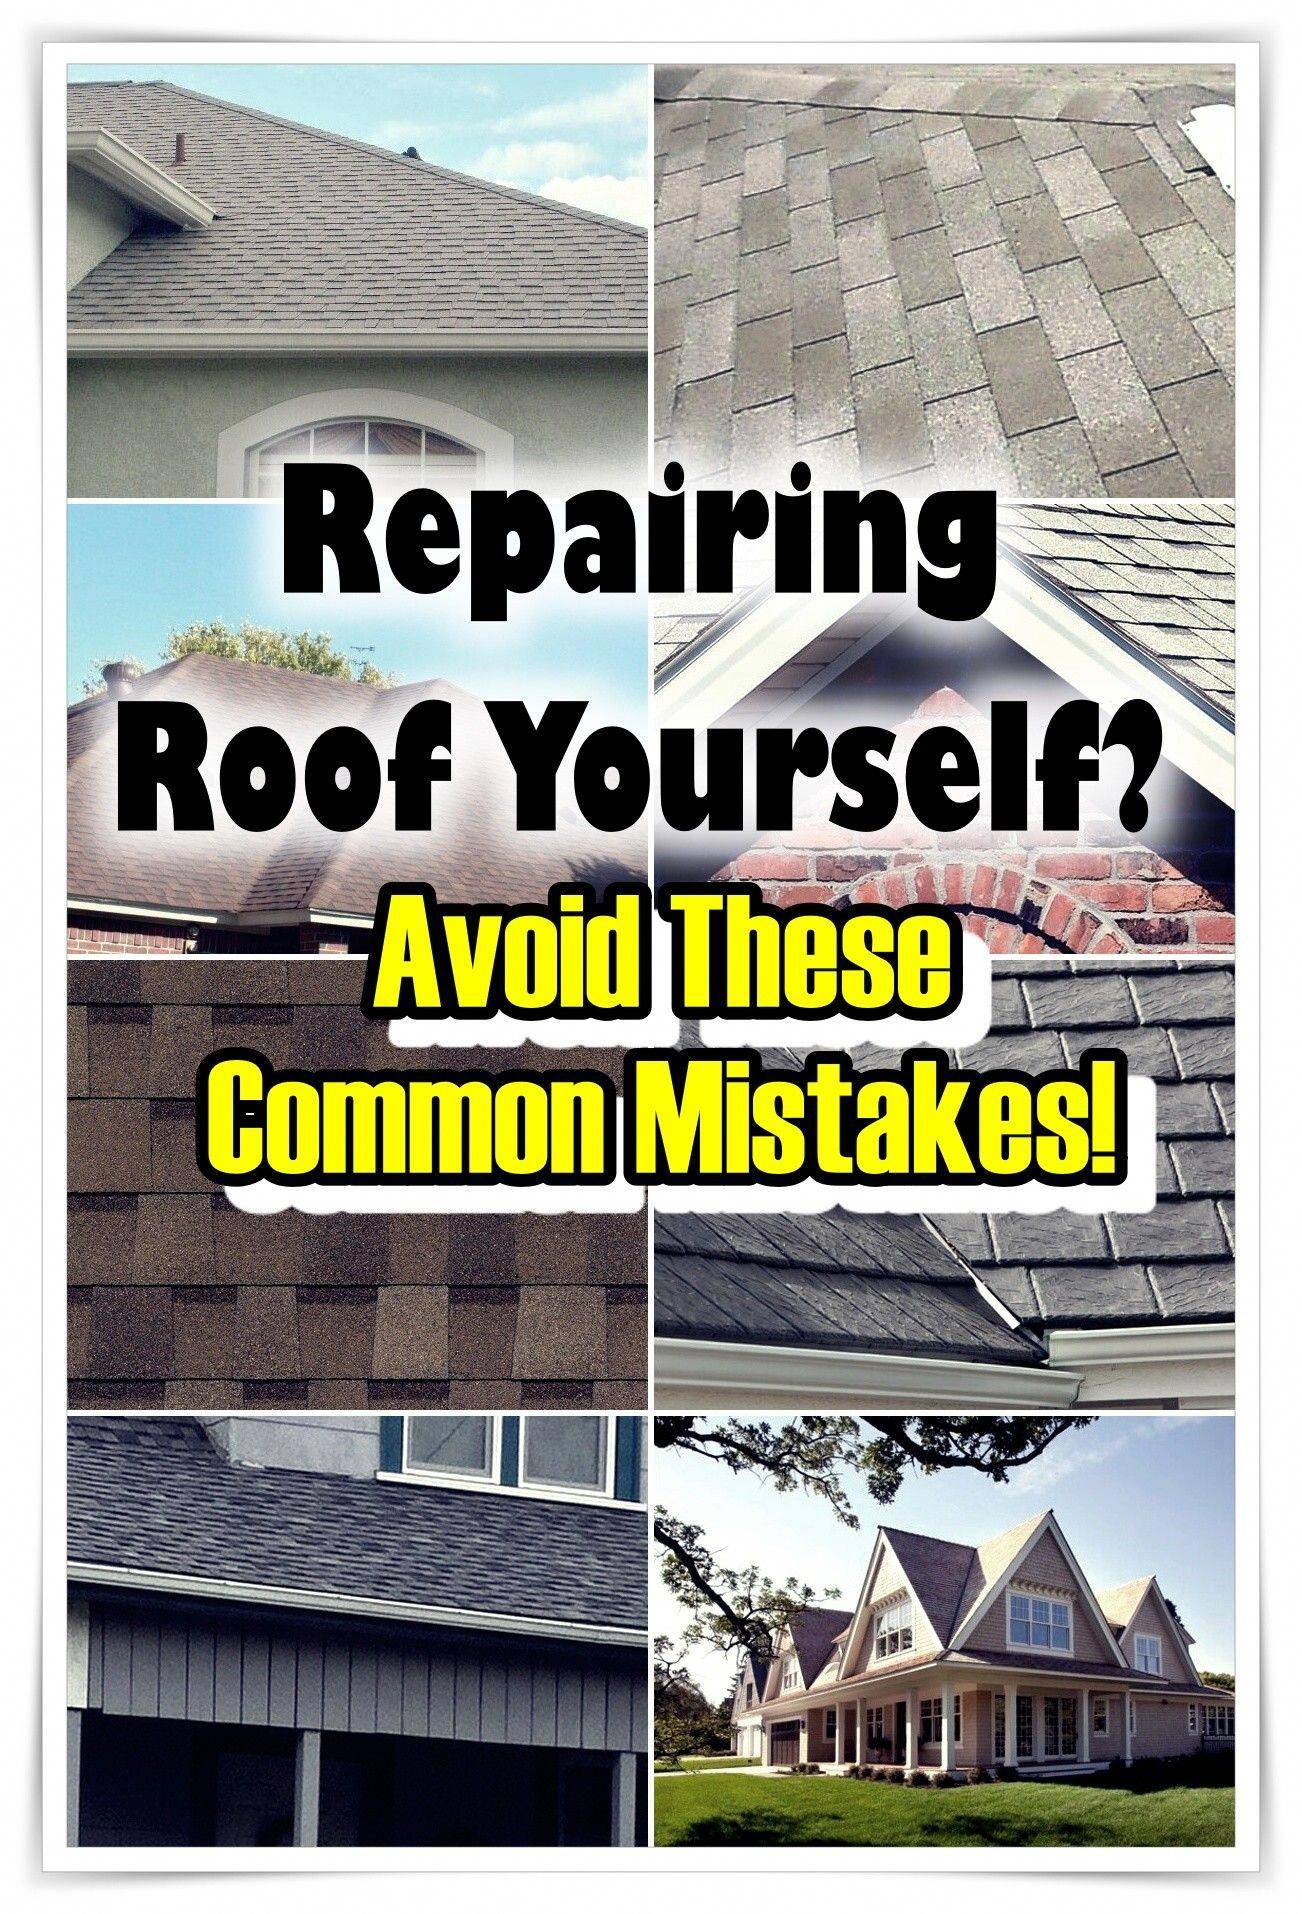 Go And Visit Our Web Page For A Good Deal More Pertaining To This Fabulous Roof Shingles Roofshingles In 2020 Roof Repair Roofing Cool Roof